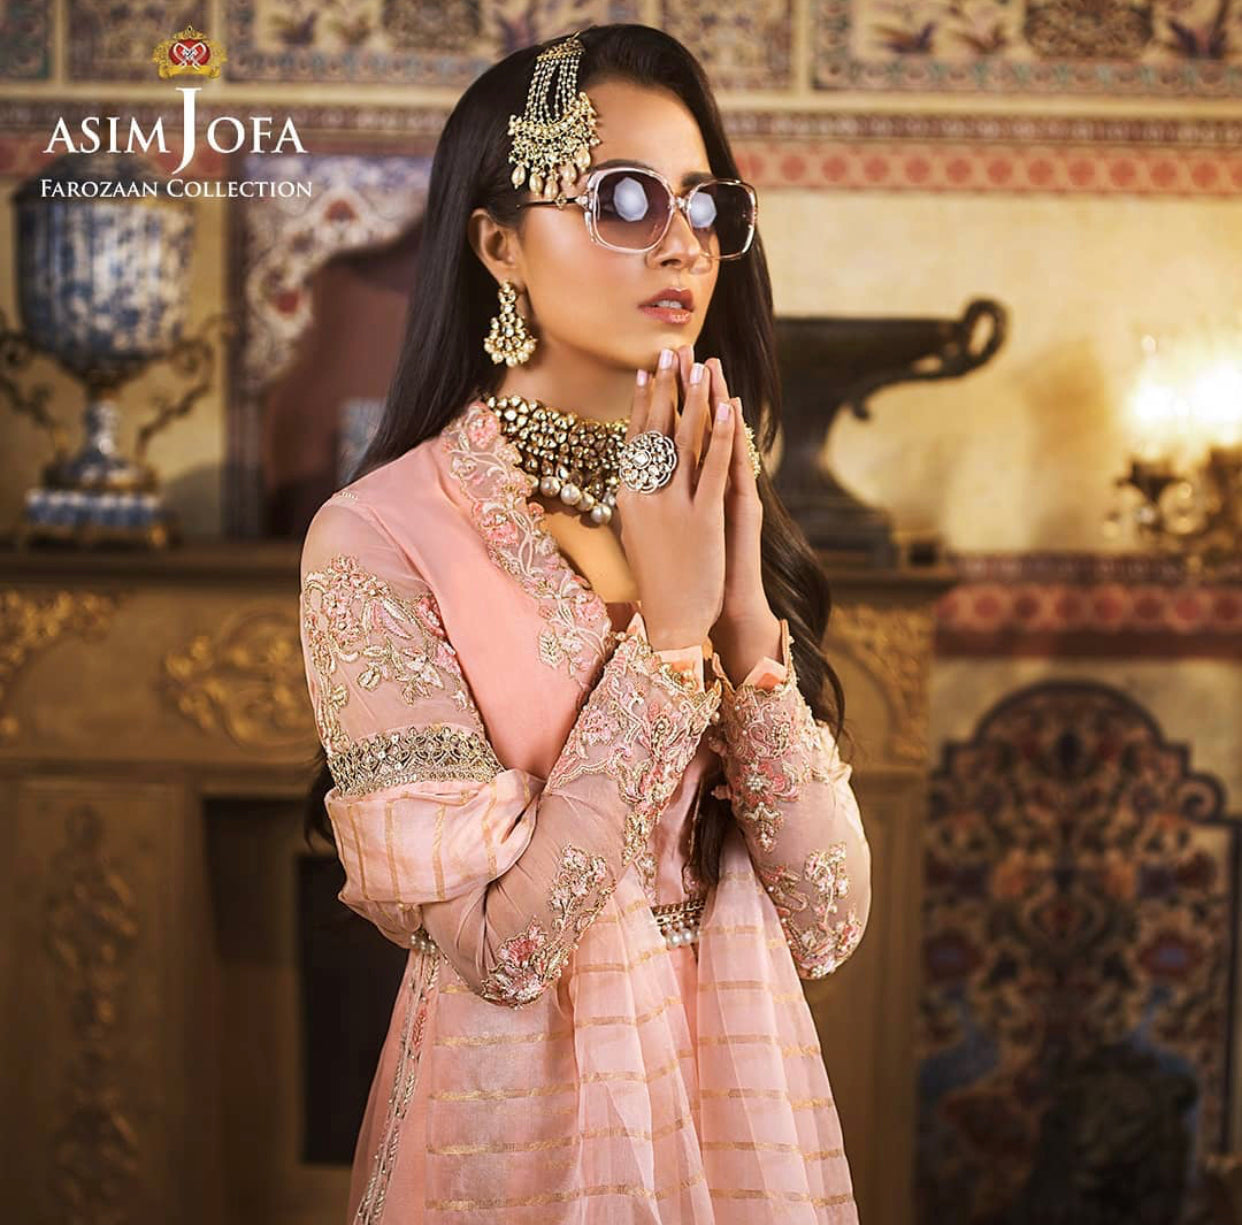 <span>If what you are looking for Asim Jofa's an elegant winter dresses and luxuriously contemporary winter dresses with velvet Dupatta or shawl that still has a sense of tradition throughout the design than look no further than Asim Jofa Designer Un-stitched and Ready to Wear attires. One of Asim Jofa's most celebrated works is the hit Design codes with the embroidered and adorned with accessories on great quality winter warm fabric has been embellished with delicate silk thread work for a more contemporary t</span><span>.</span>